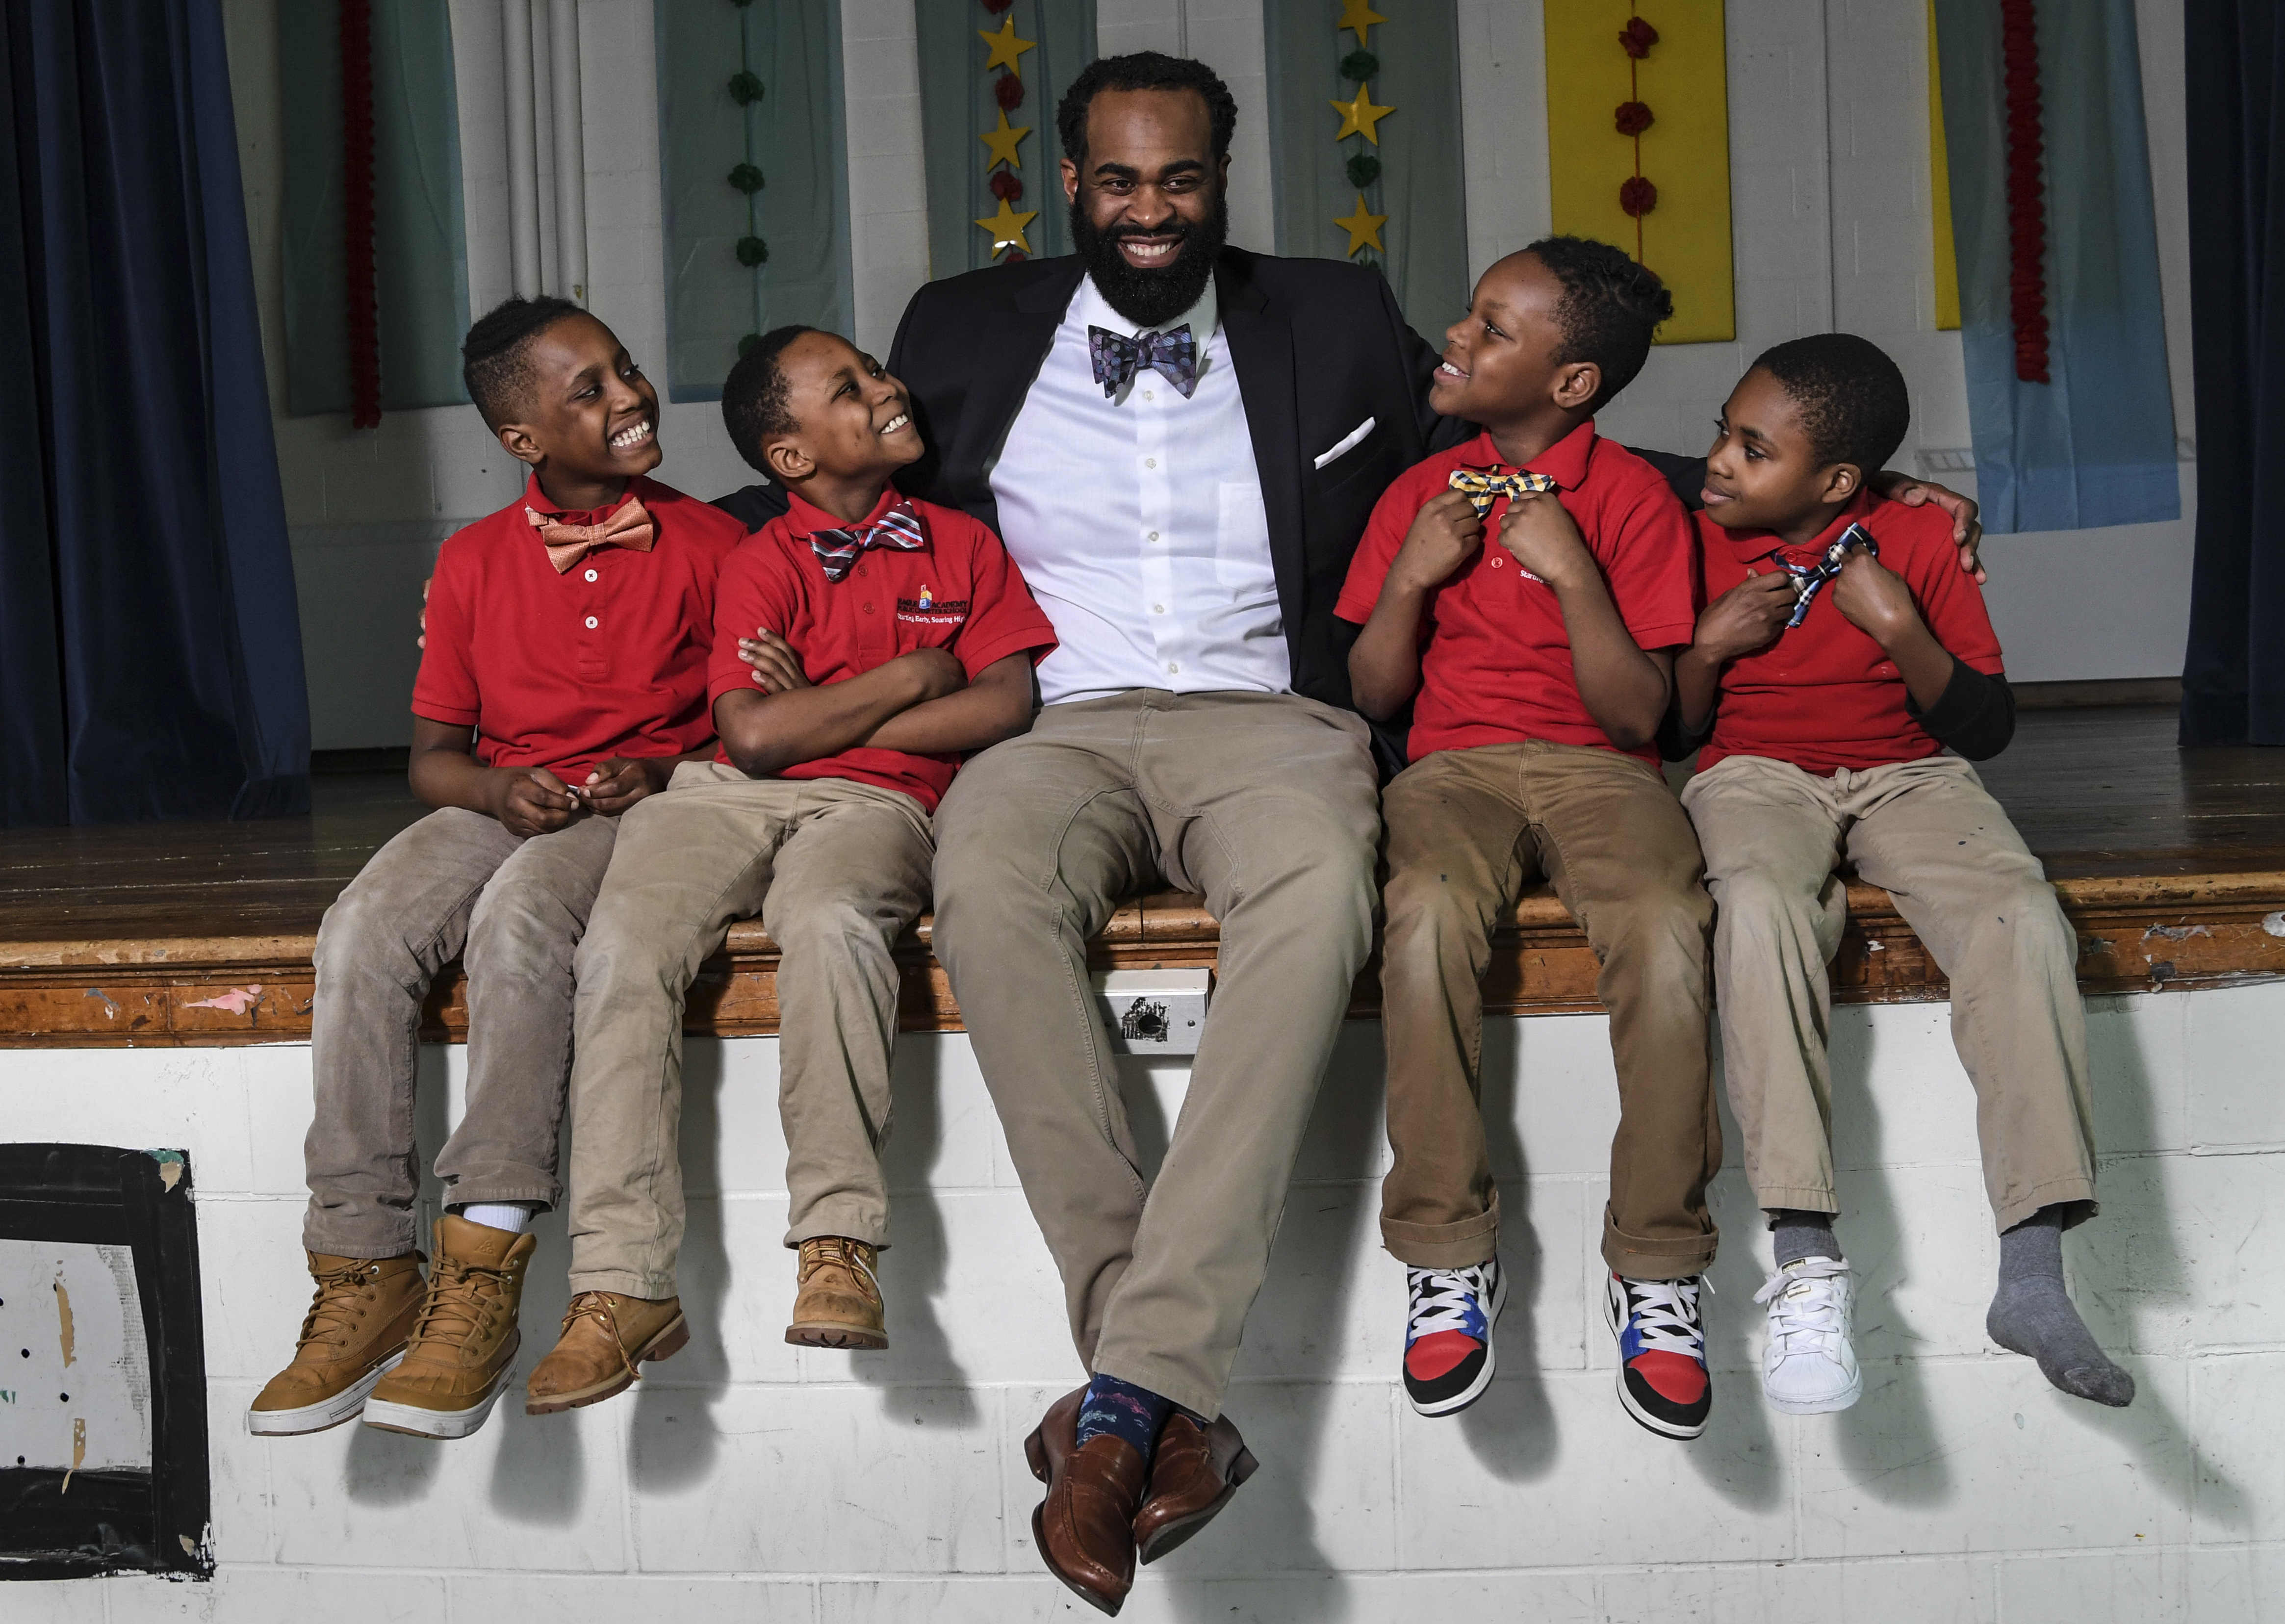 This charter school principal dresses for Wall Street, so his